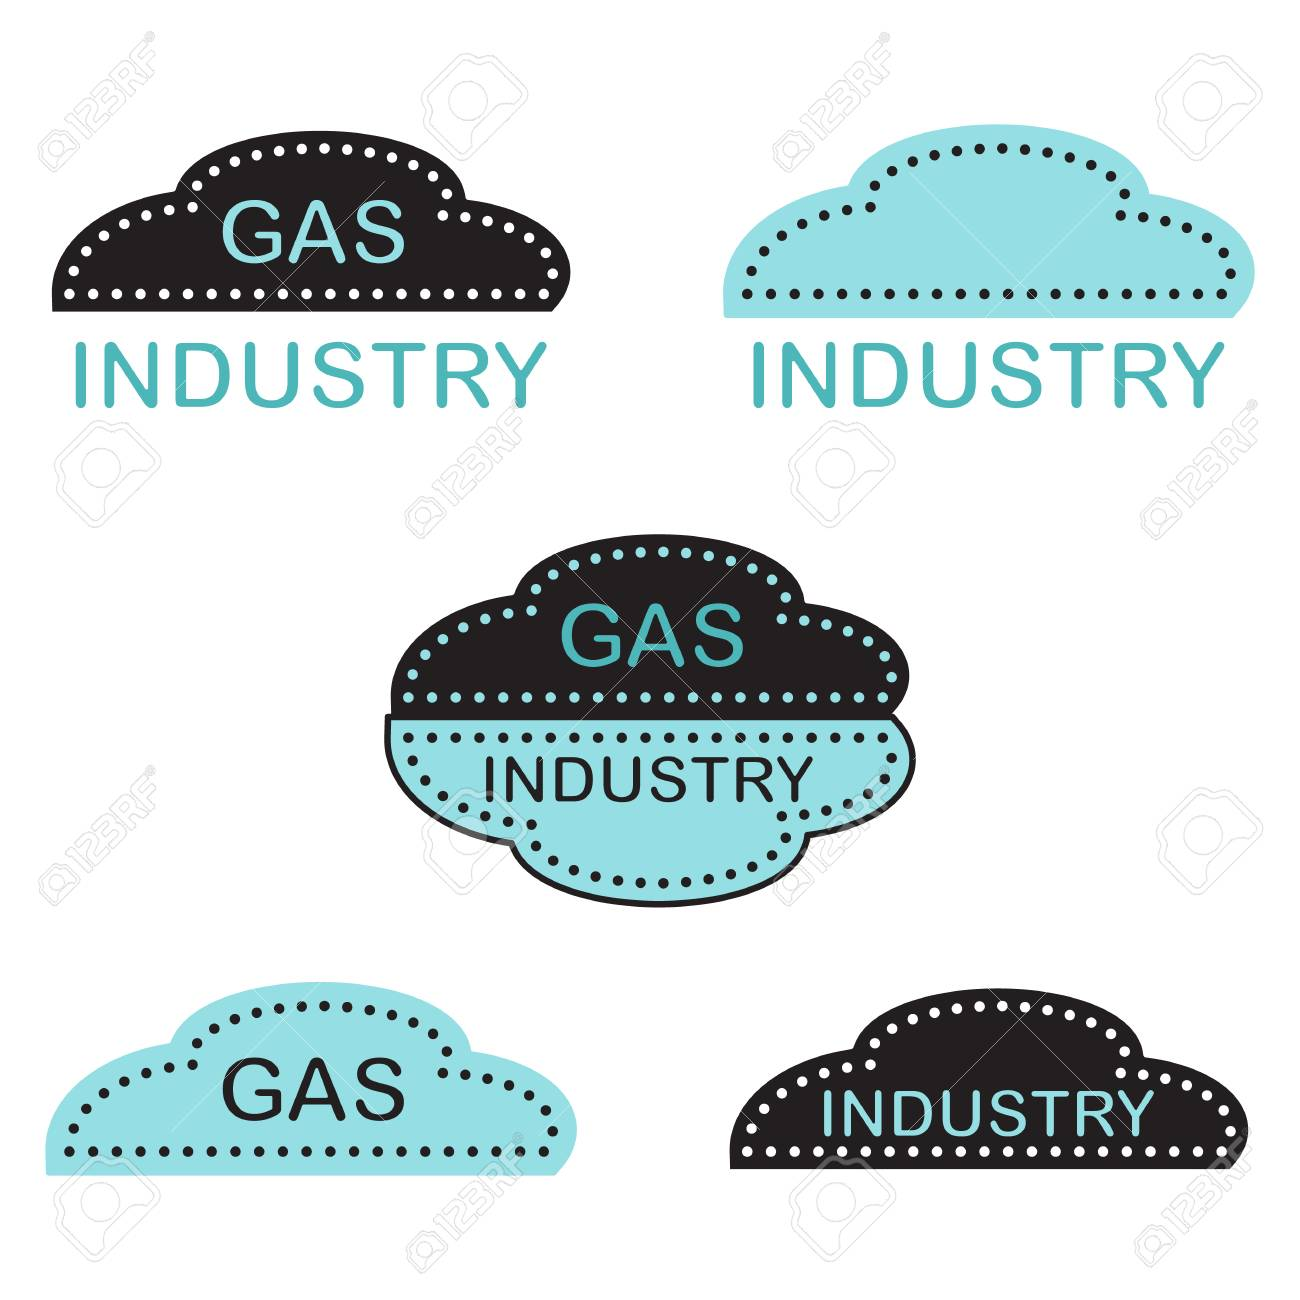 Label, stickers or logos of the gas industry  Design for announcement,